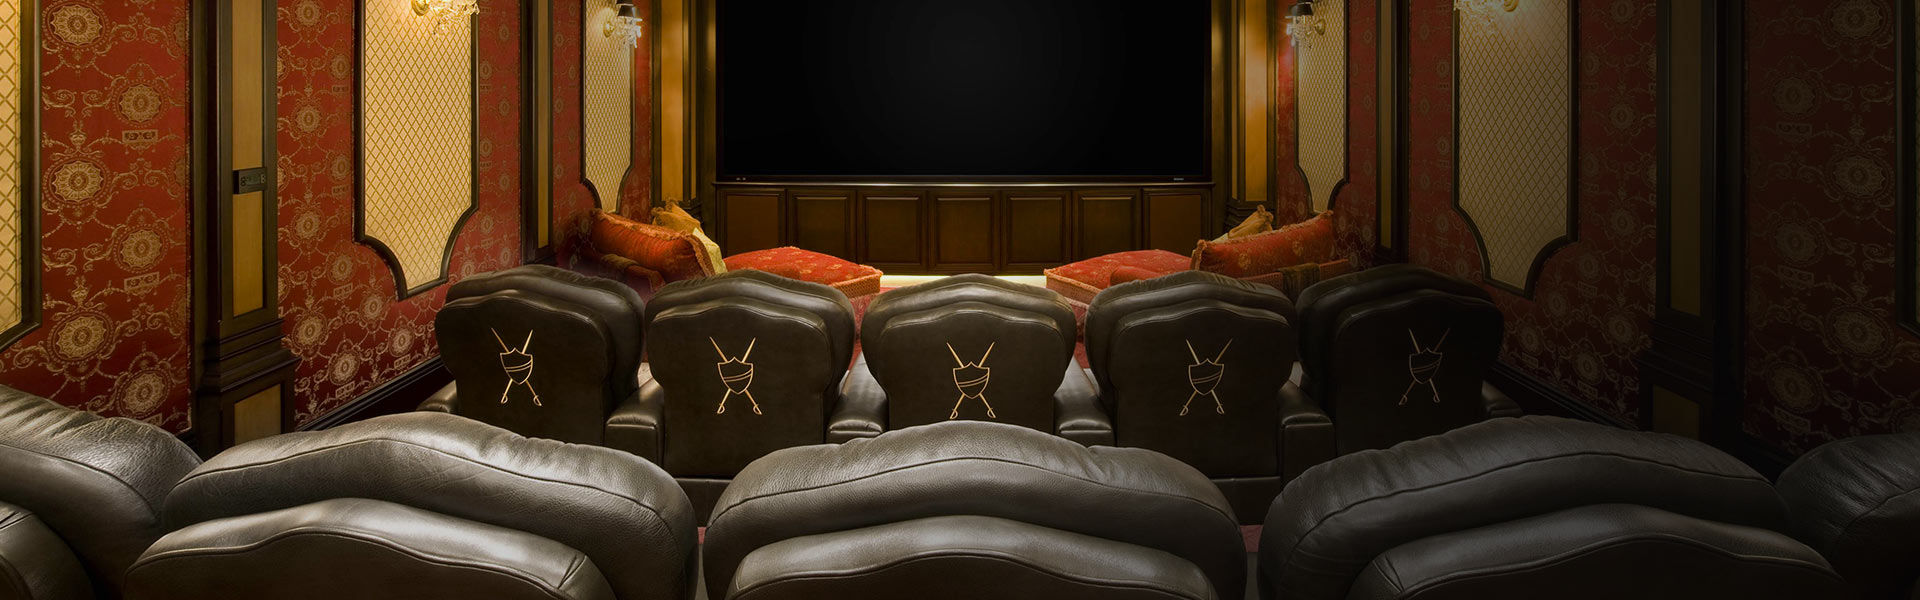 dbox-poltrone-home-cinema